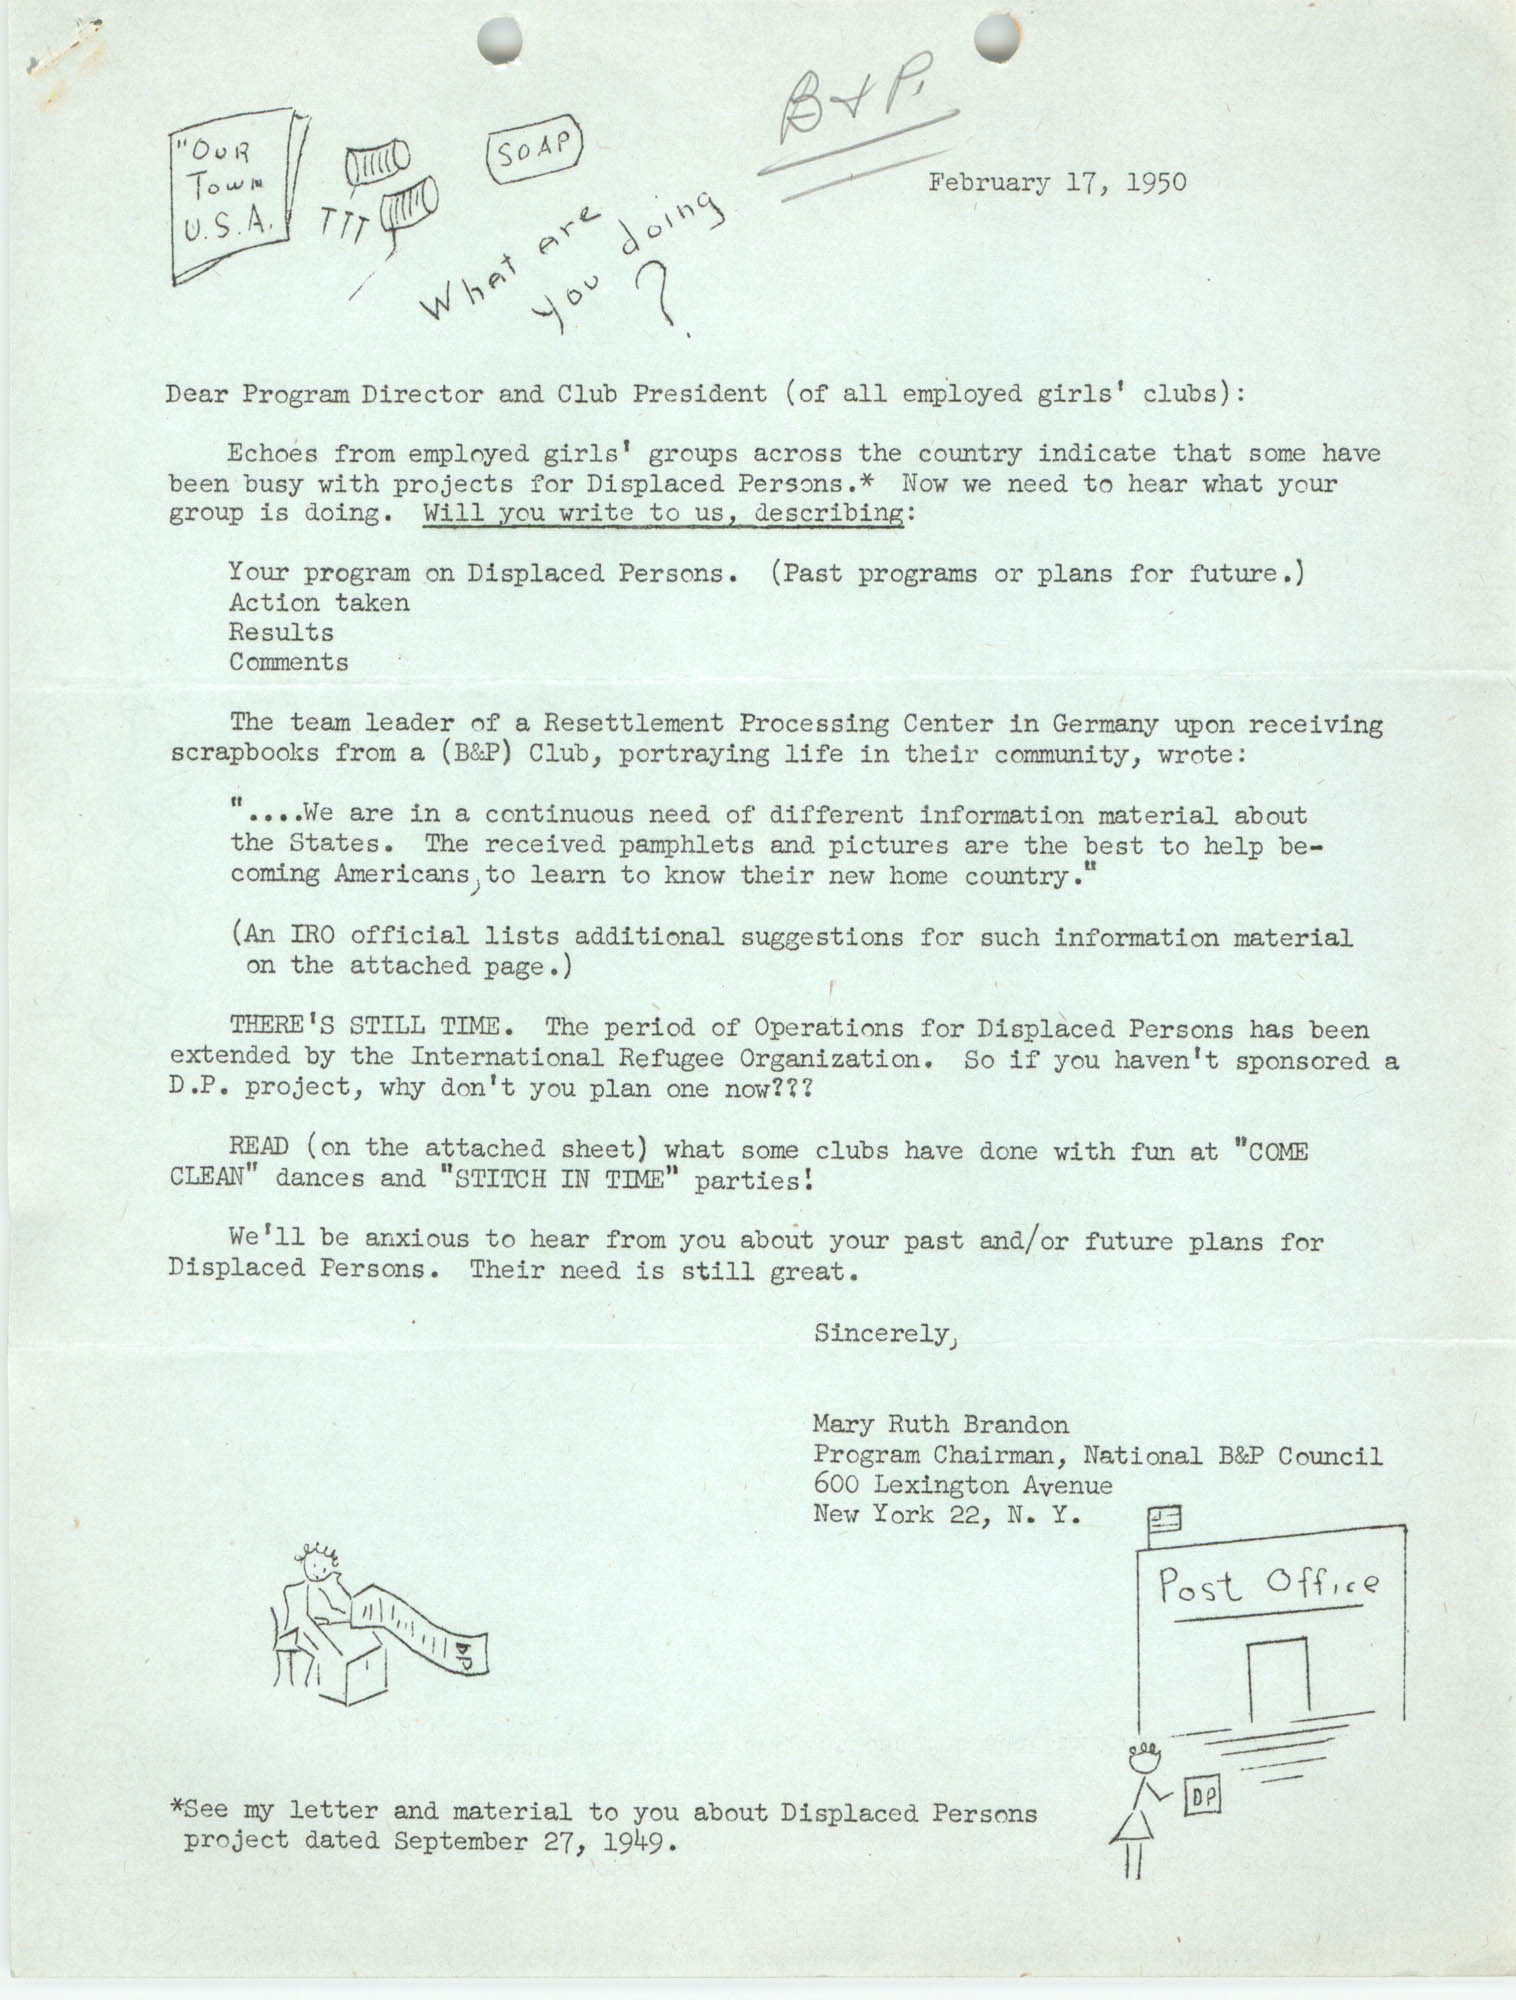 Letter from Mary Ruth Brandon to Program Director and Club President, February 17, 1950